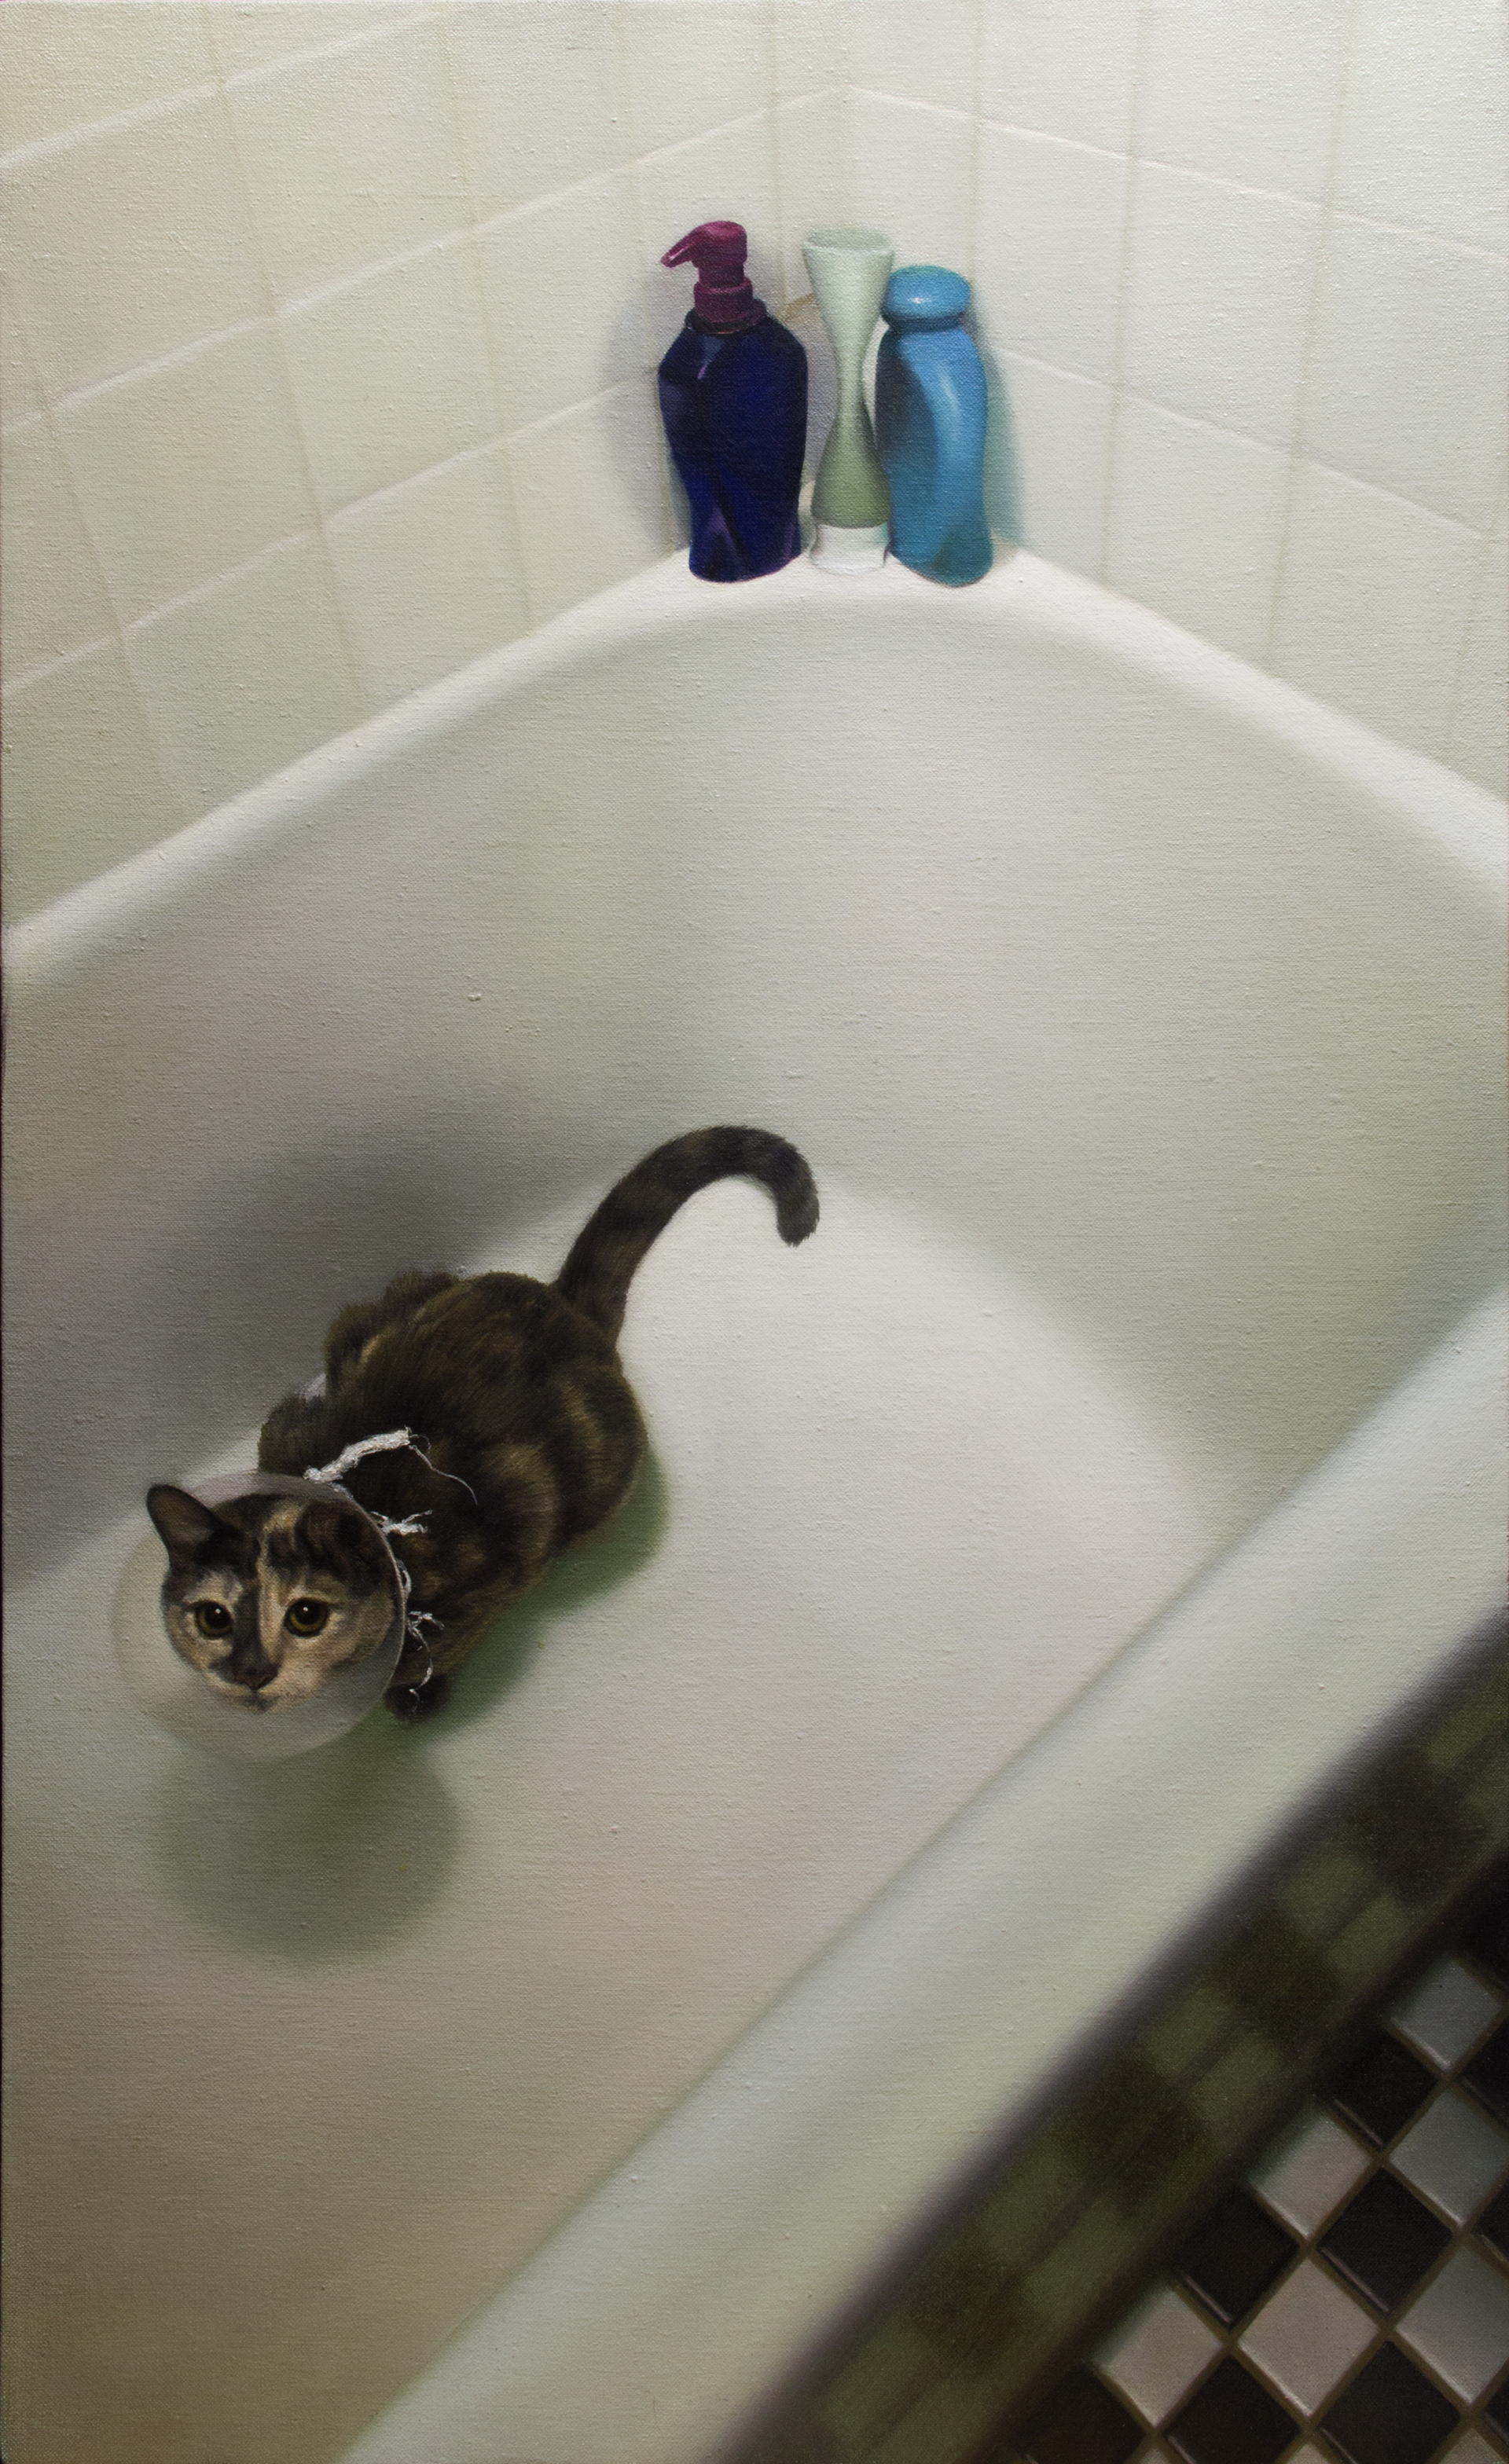 Cat in Bathtub by Zane York